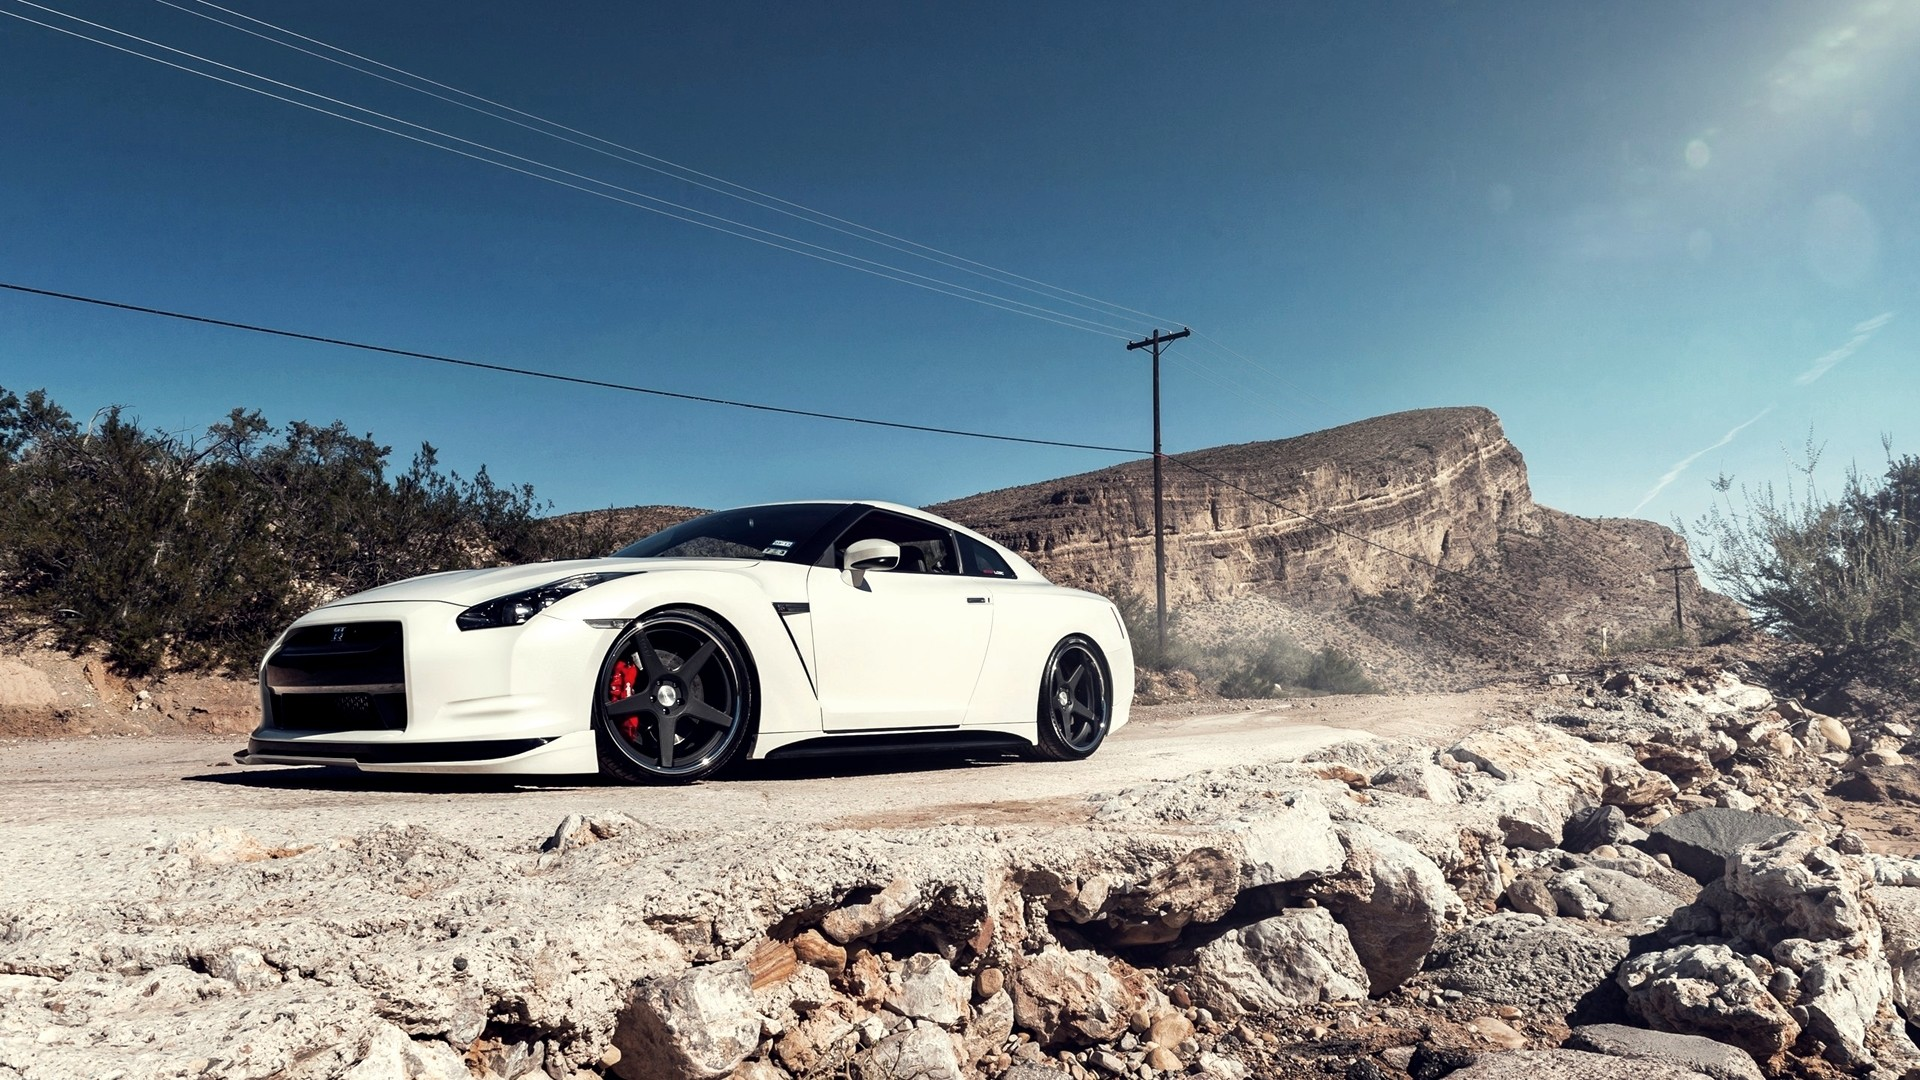 nissan gtr wallpaper 1080p wallpapersafari. Black Bedroom Furniture Sets. Home Design Ideas